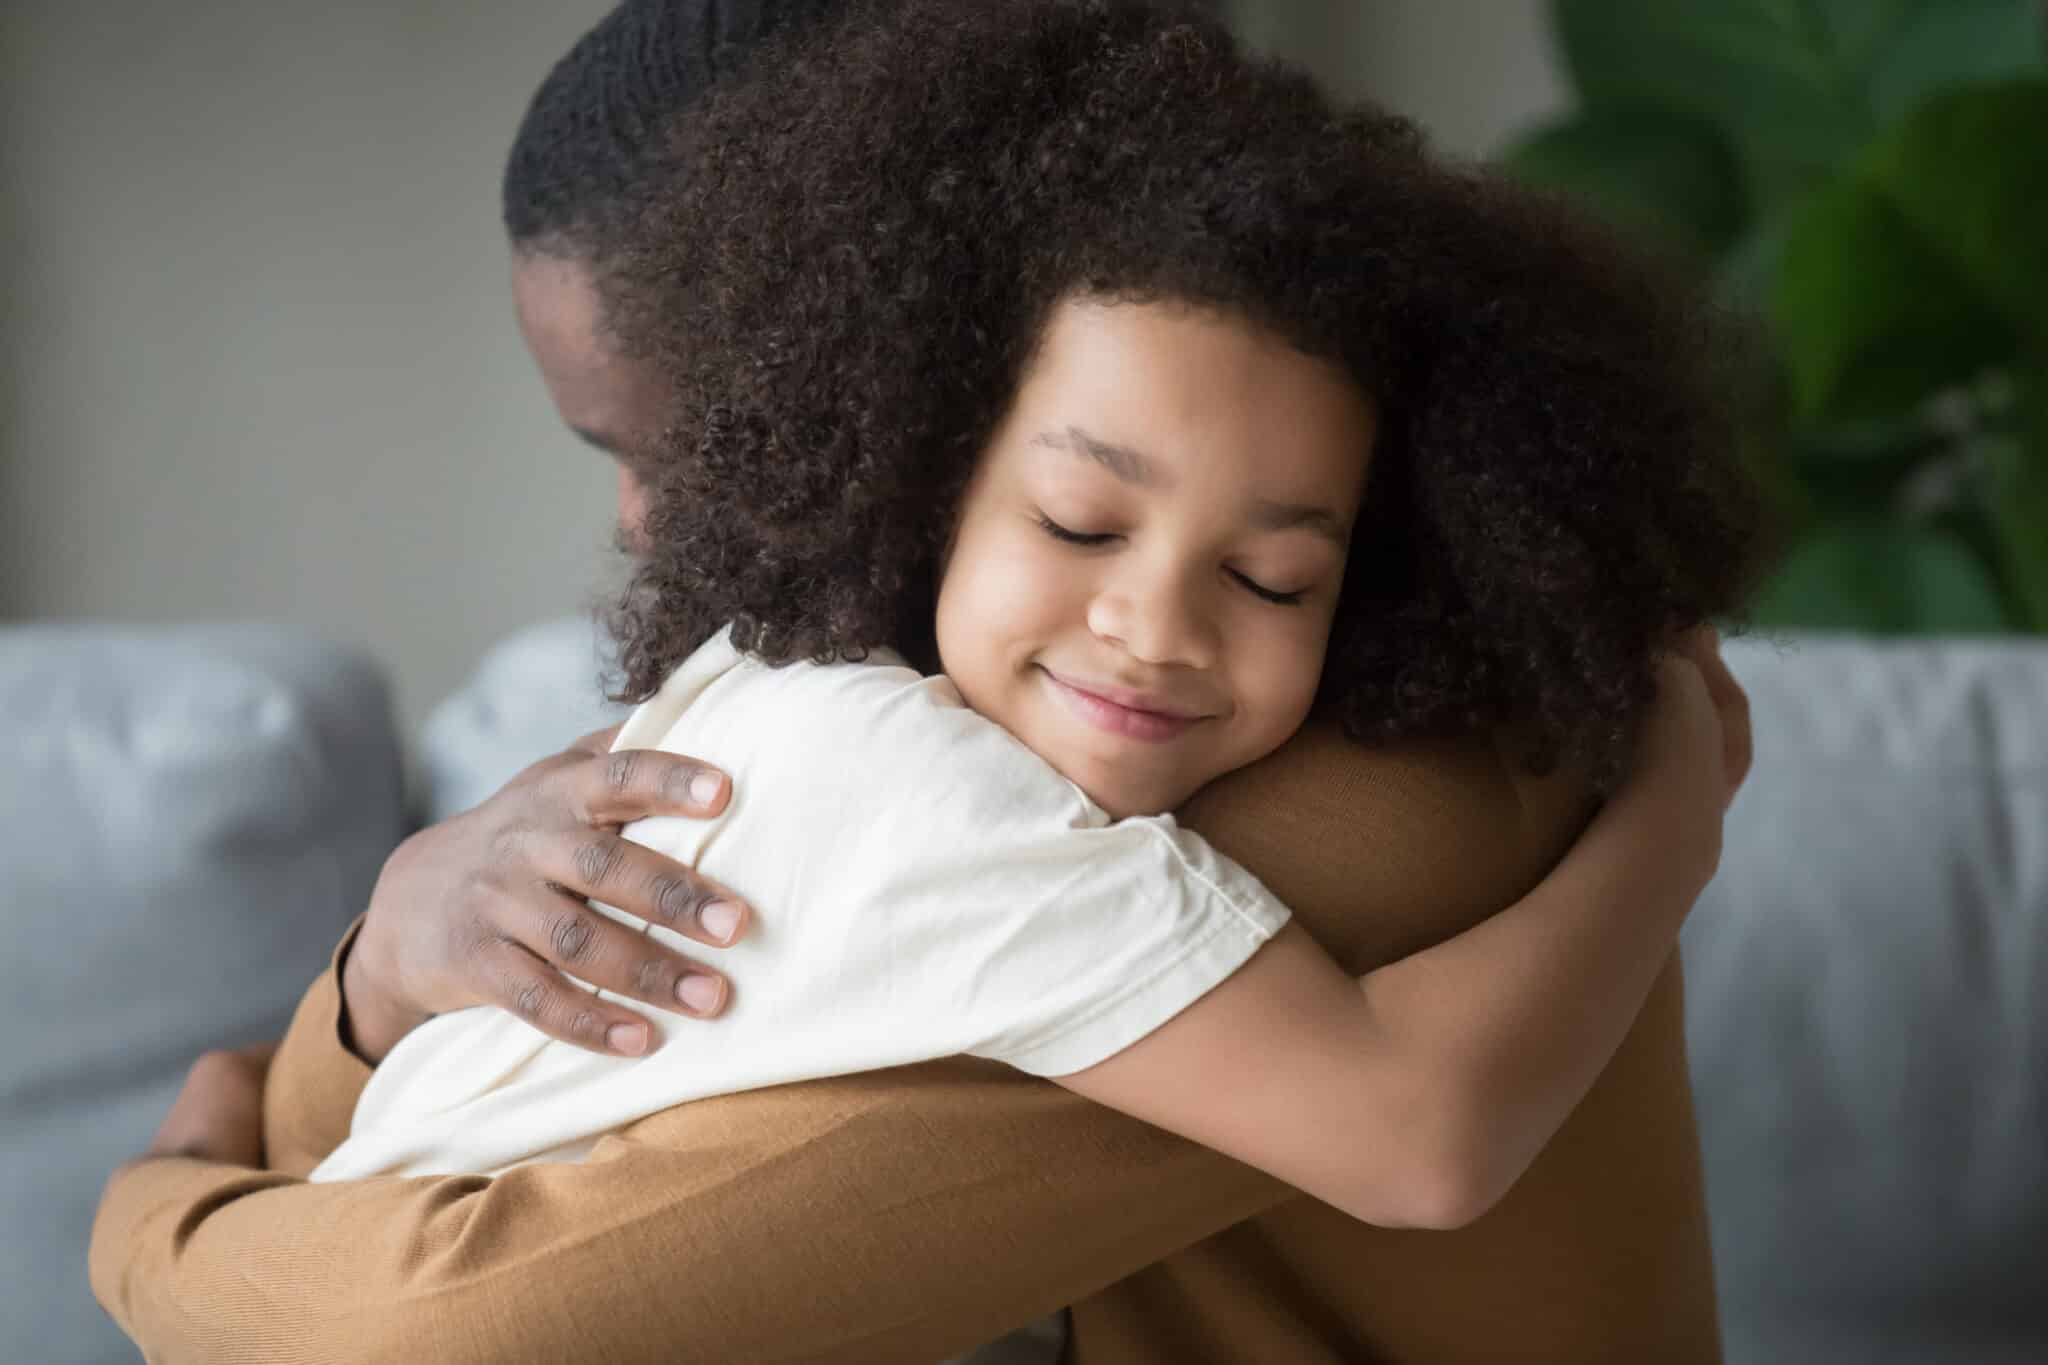 A Child Smiling With Her Eyes Closed In Her Fathers Arms